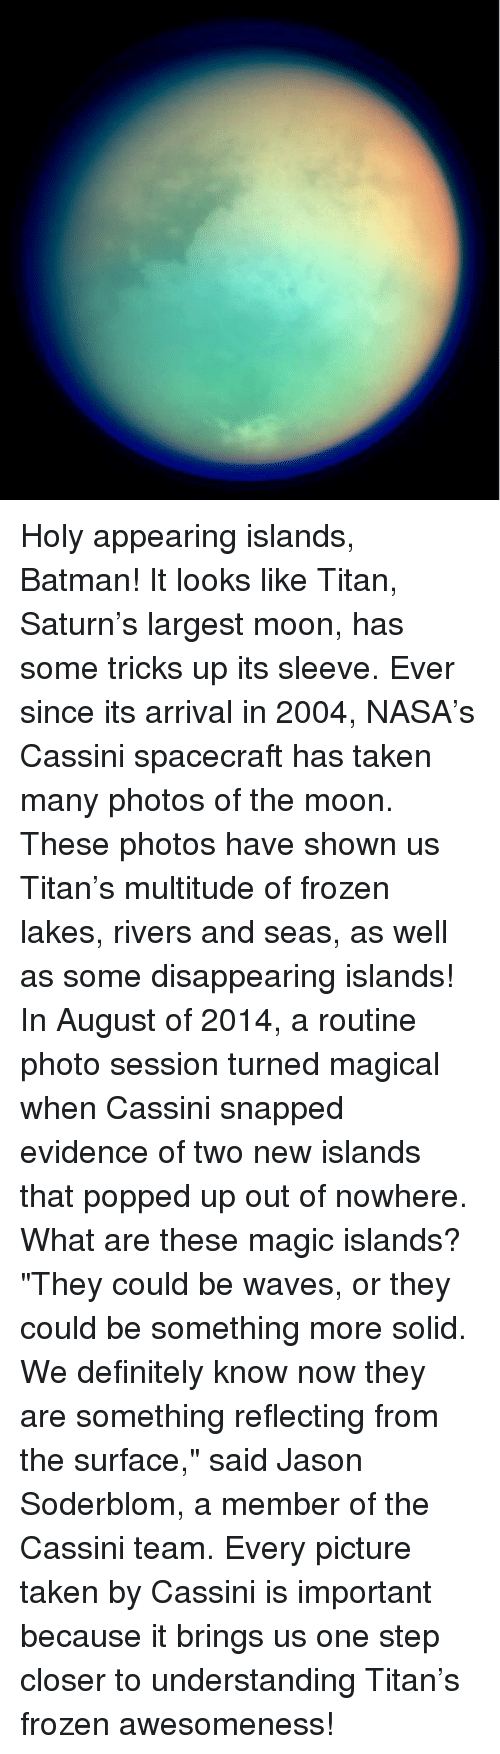 """Definitally: Holy appearing islands, Batman! It looks like Titan, Saturn's largest moon, has some tricks up its sleeve. Ever since its arrival in 2004, NASA's Cassini spacecraft has taken many photos of the moon. These photos have shown us Titan's multitude of frozen lakes, rivers and seas, as well as some disappearing islands! In August of 2014, a routine photo session turned magical when Cassini snapped evidence of two new islands that popped up out of nowhere. What are these magic islands? """"They could be waves, or they could be something more solid. We definitely know now they are something reflecting from the surface,"""" said Jason Soderblom, a member of the Cassini team. Every picture taken by Cassini is important because it brings us one step closer to understanding Titan's frozen awesomeness!"""